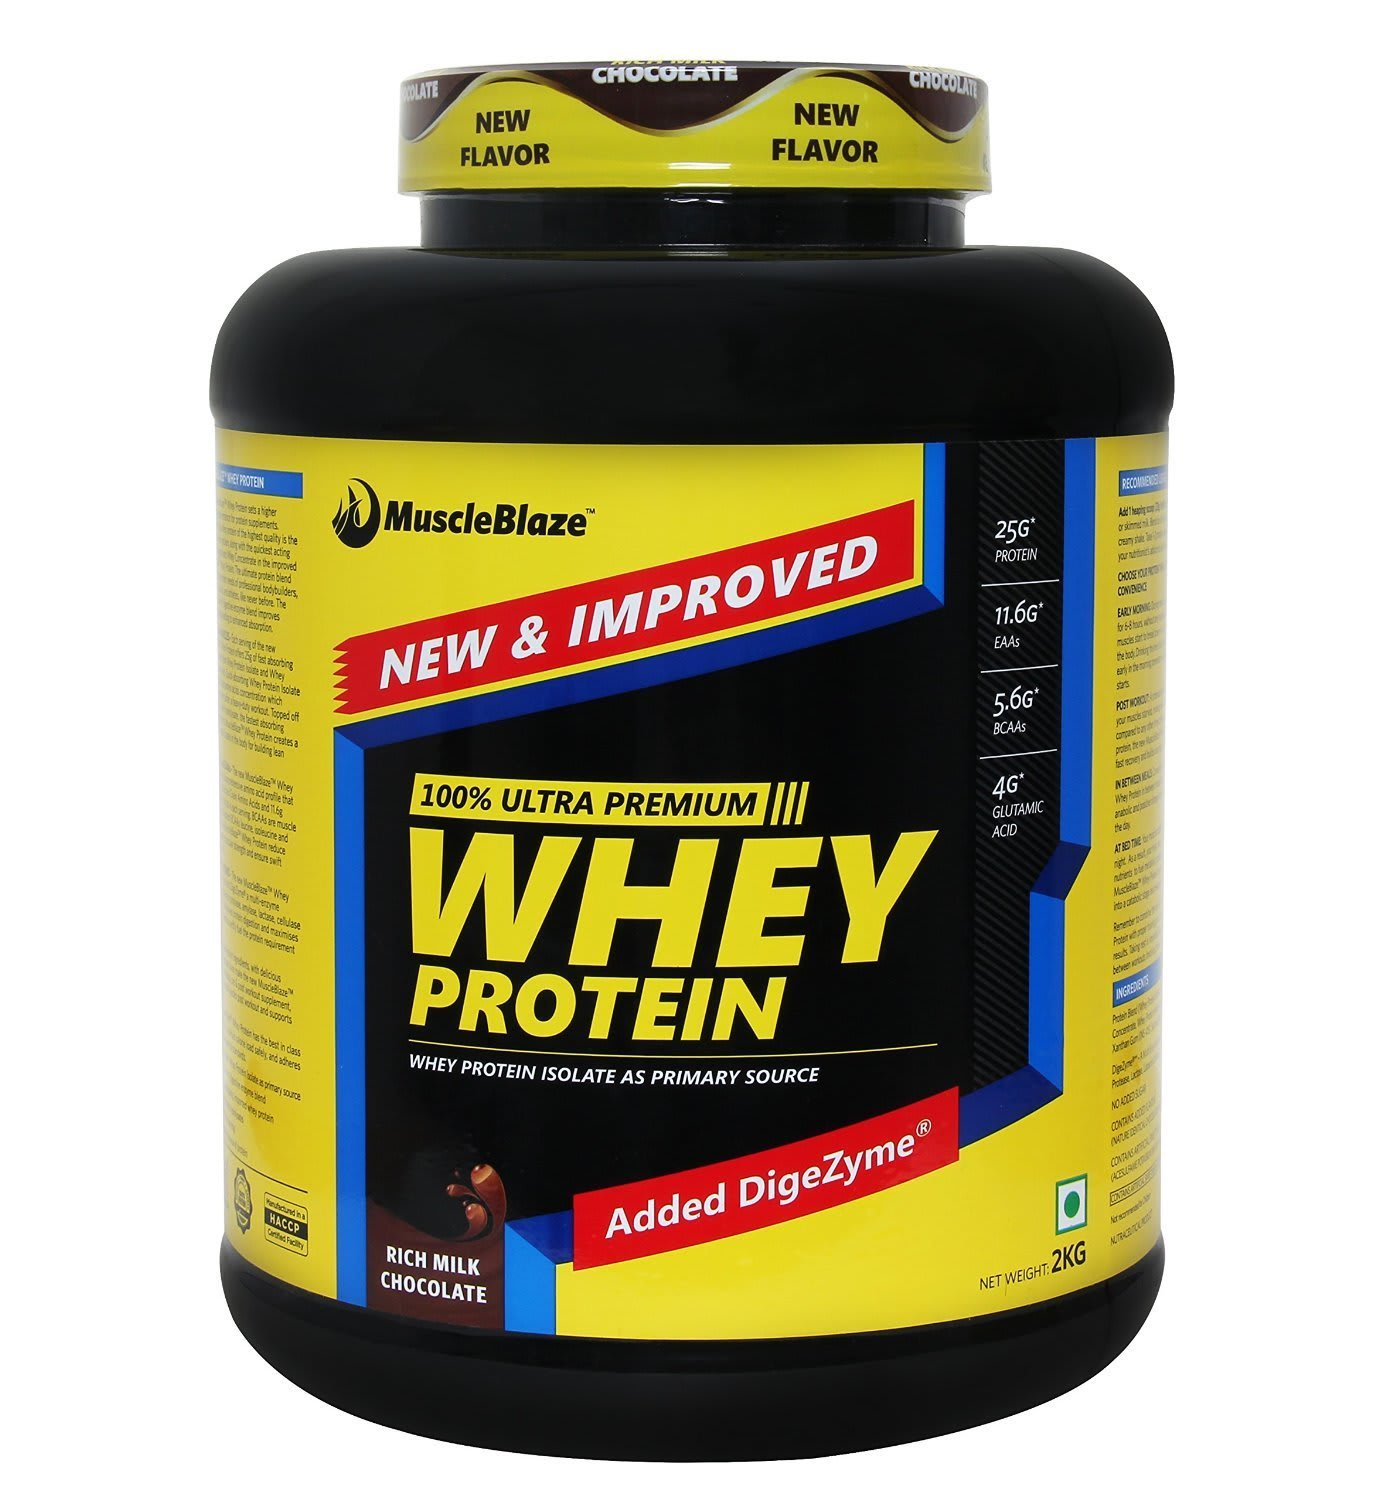 MuscleBlaze Whey Protein with Digestive Enzyme Rich Milk Chocolate